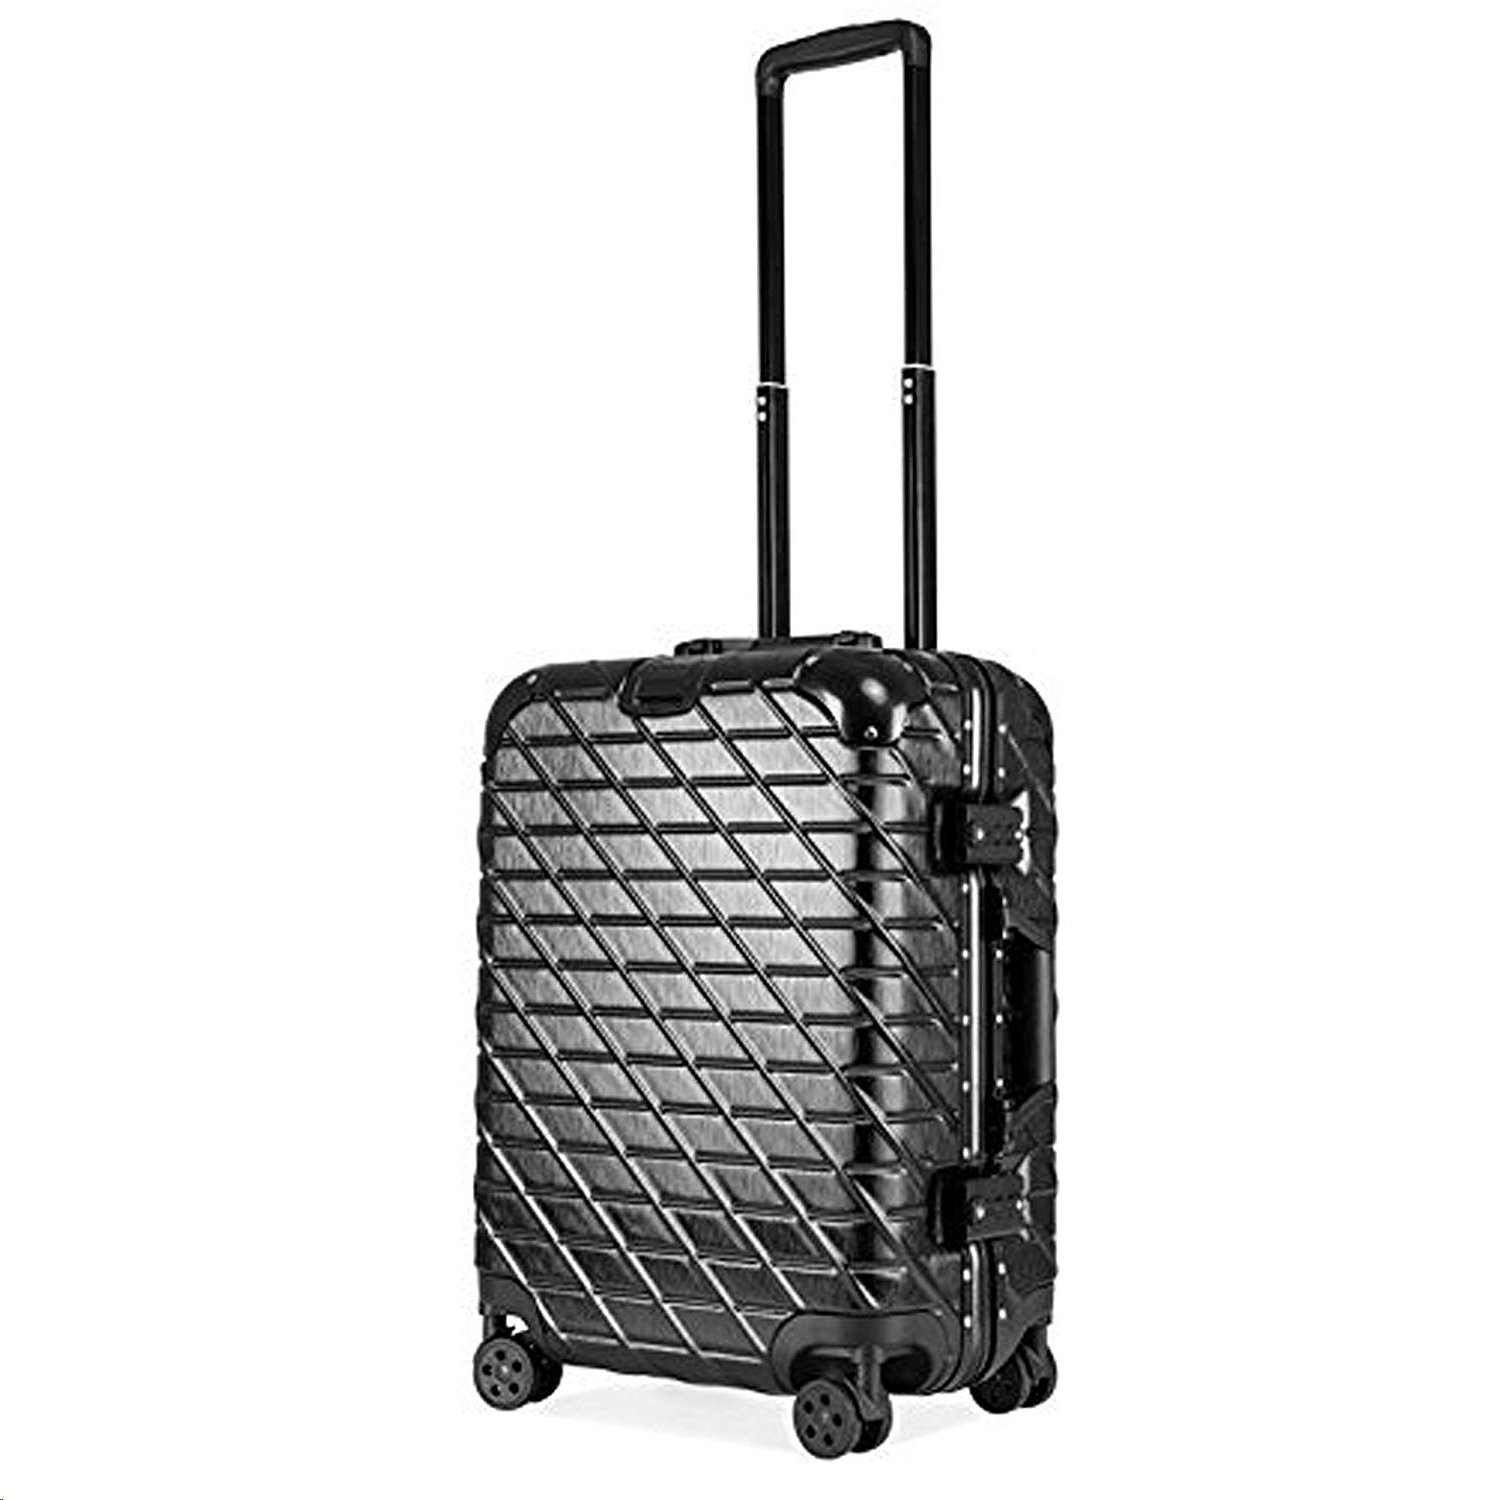 ECCORE 20 inch Lightweight Suitcase ABS Hard Shell Travel 4 Wheel Case Carry On Hand Luggage (57CM/ 48L, Black)